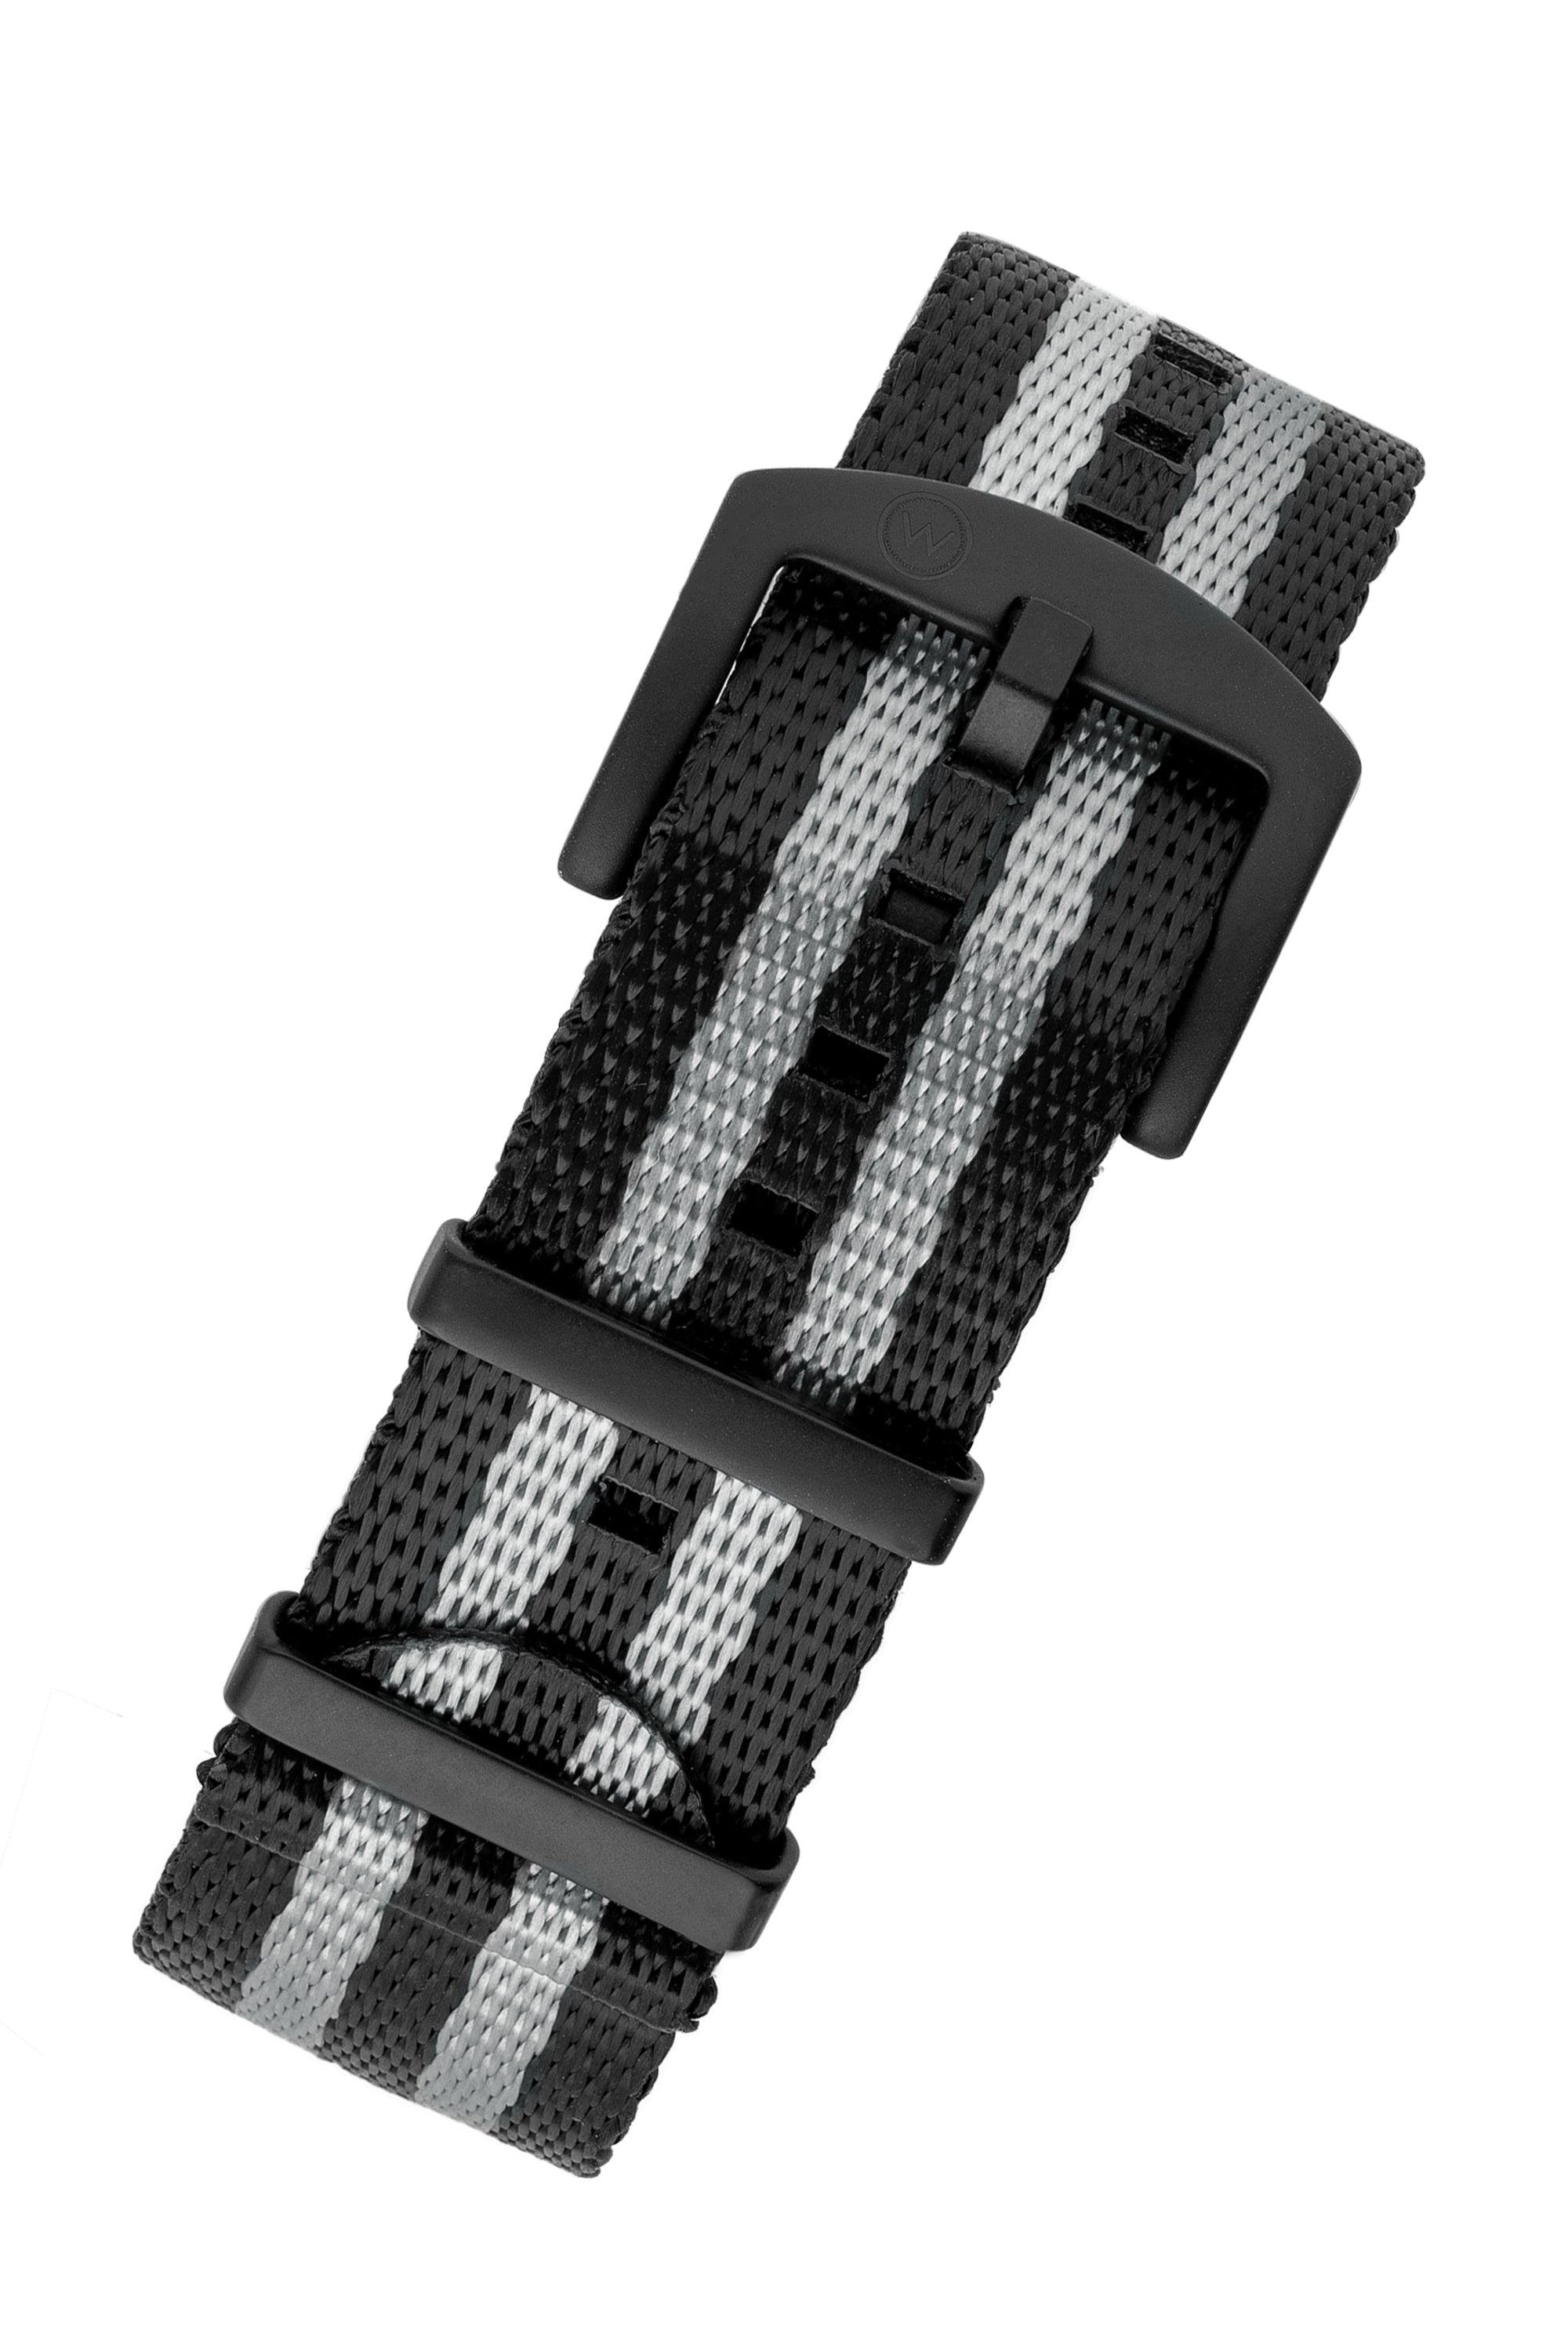 Seatbelt NATO Nylon Watch Strap in BLACK & GREY Stripes with BLACK PVD Hardware